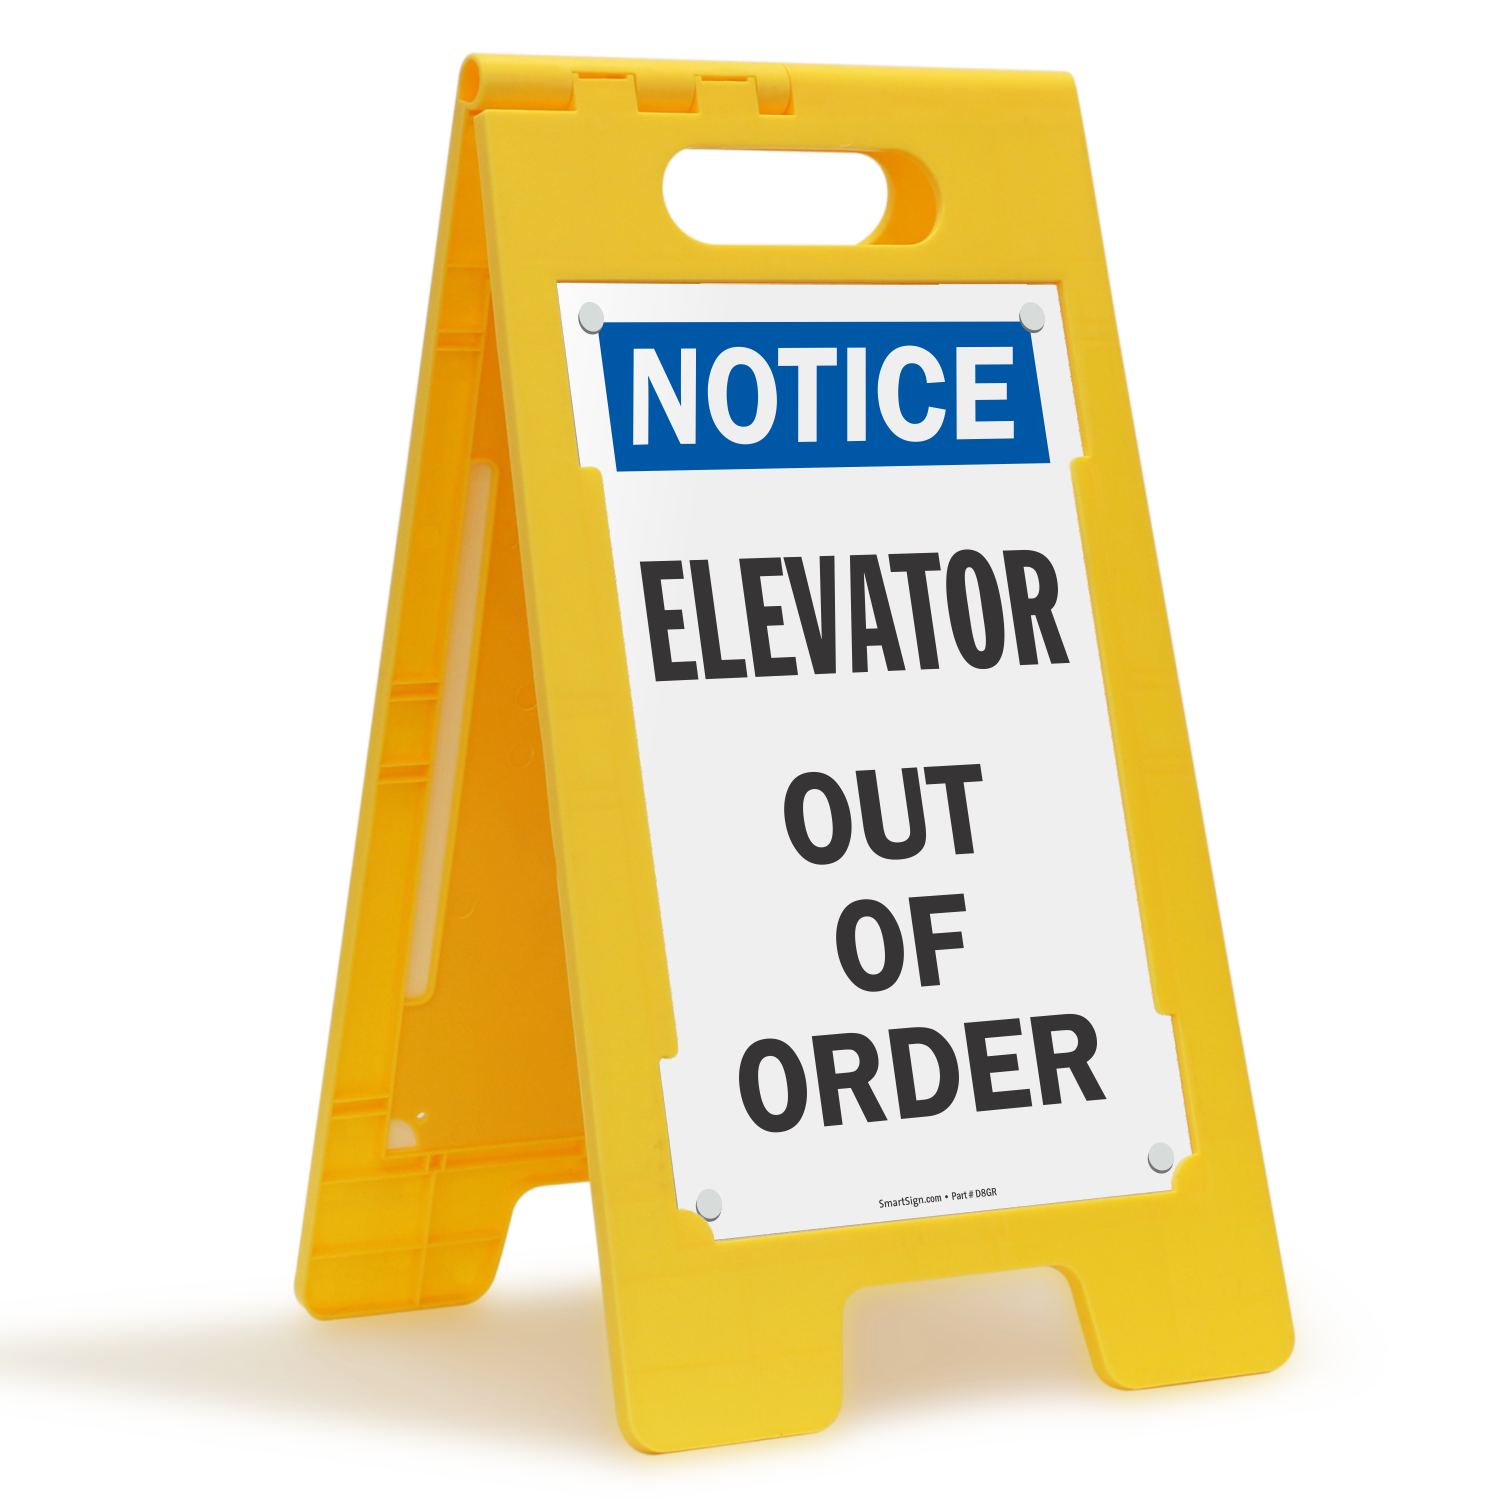 Elevator clipart elevator repair. Out of order signs